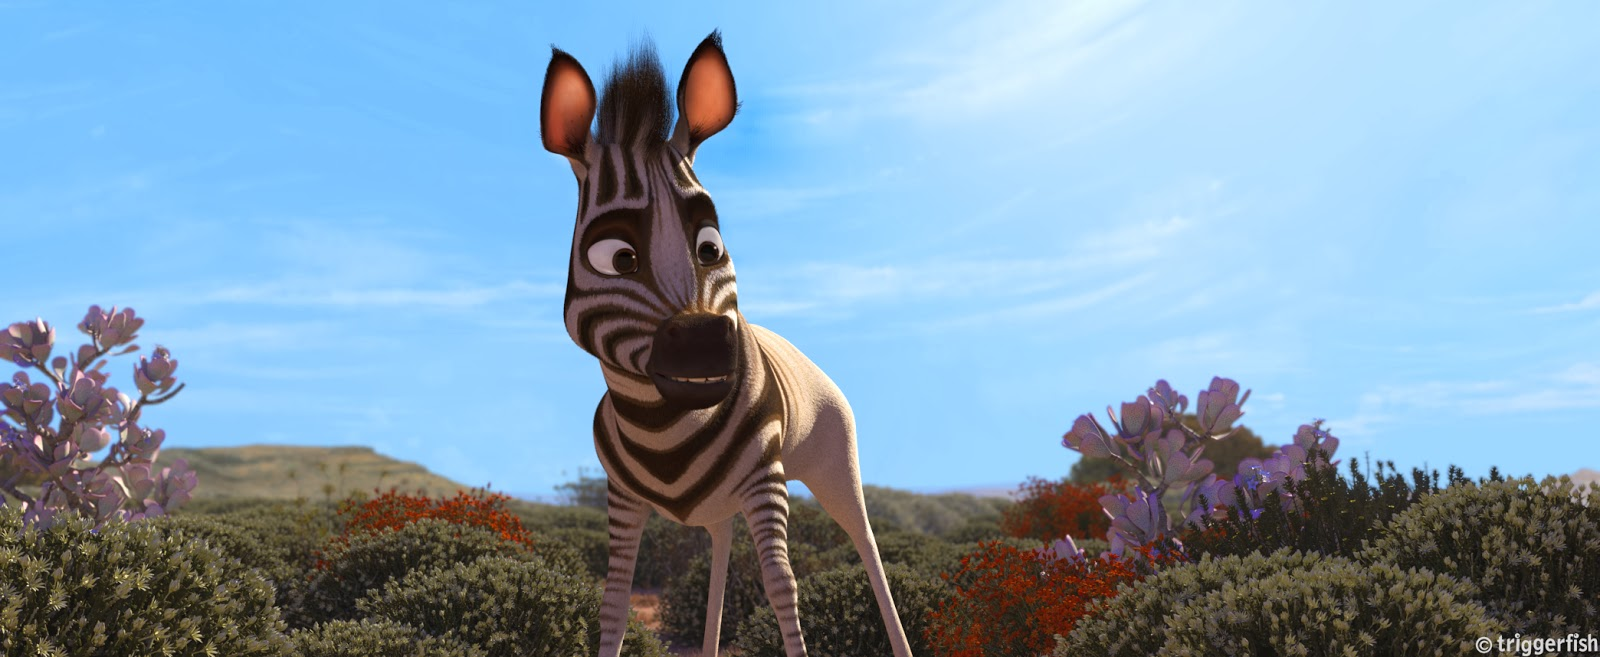 Movie review, trailer and rating of Khumba